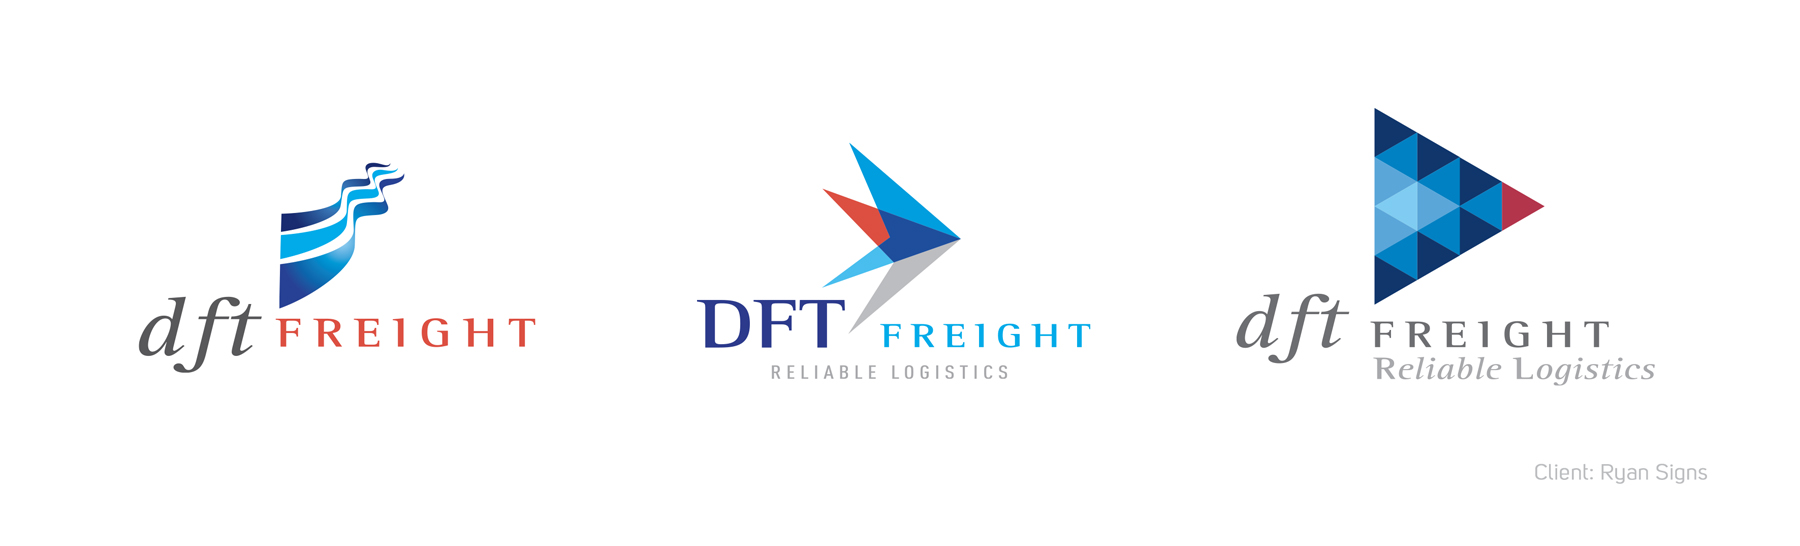 DTF Freight Logo display banner